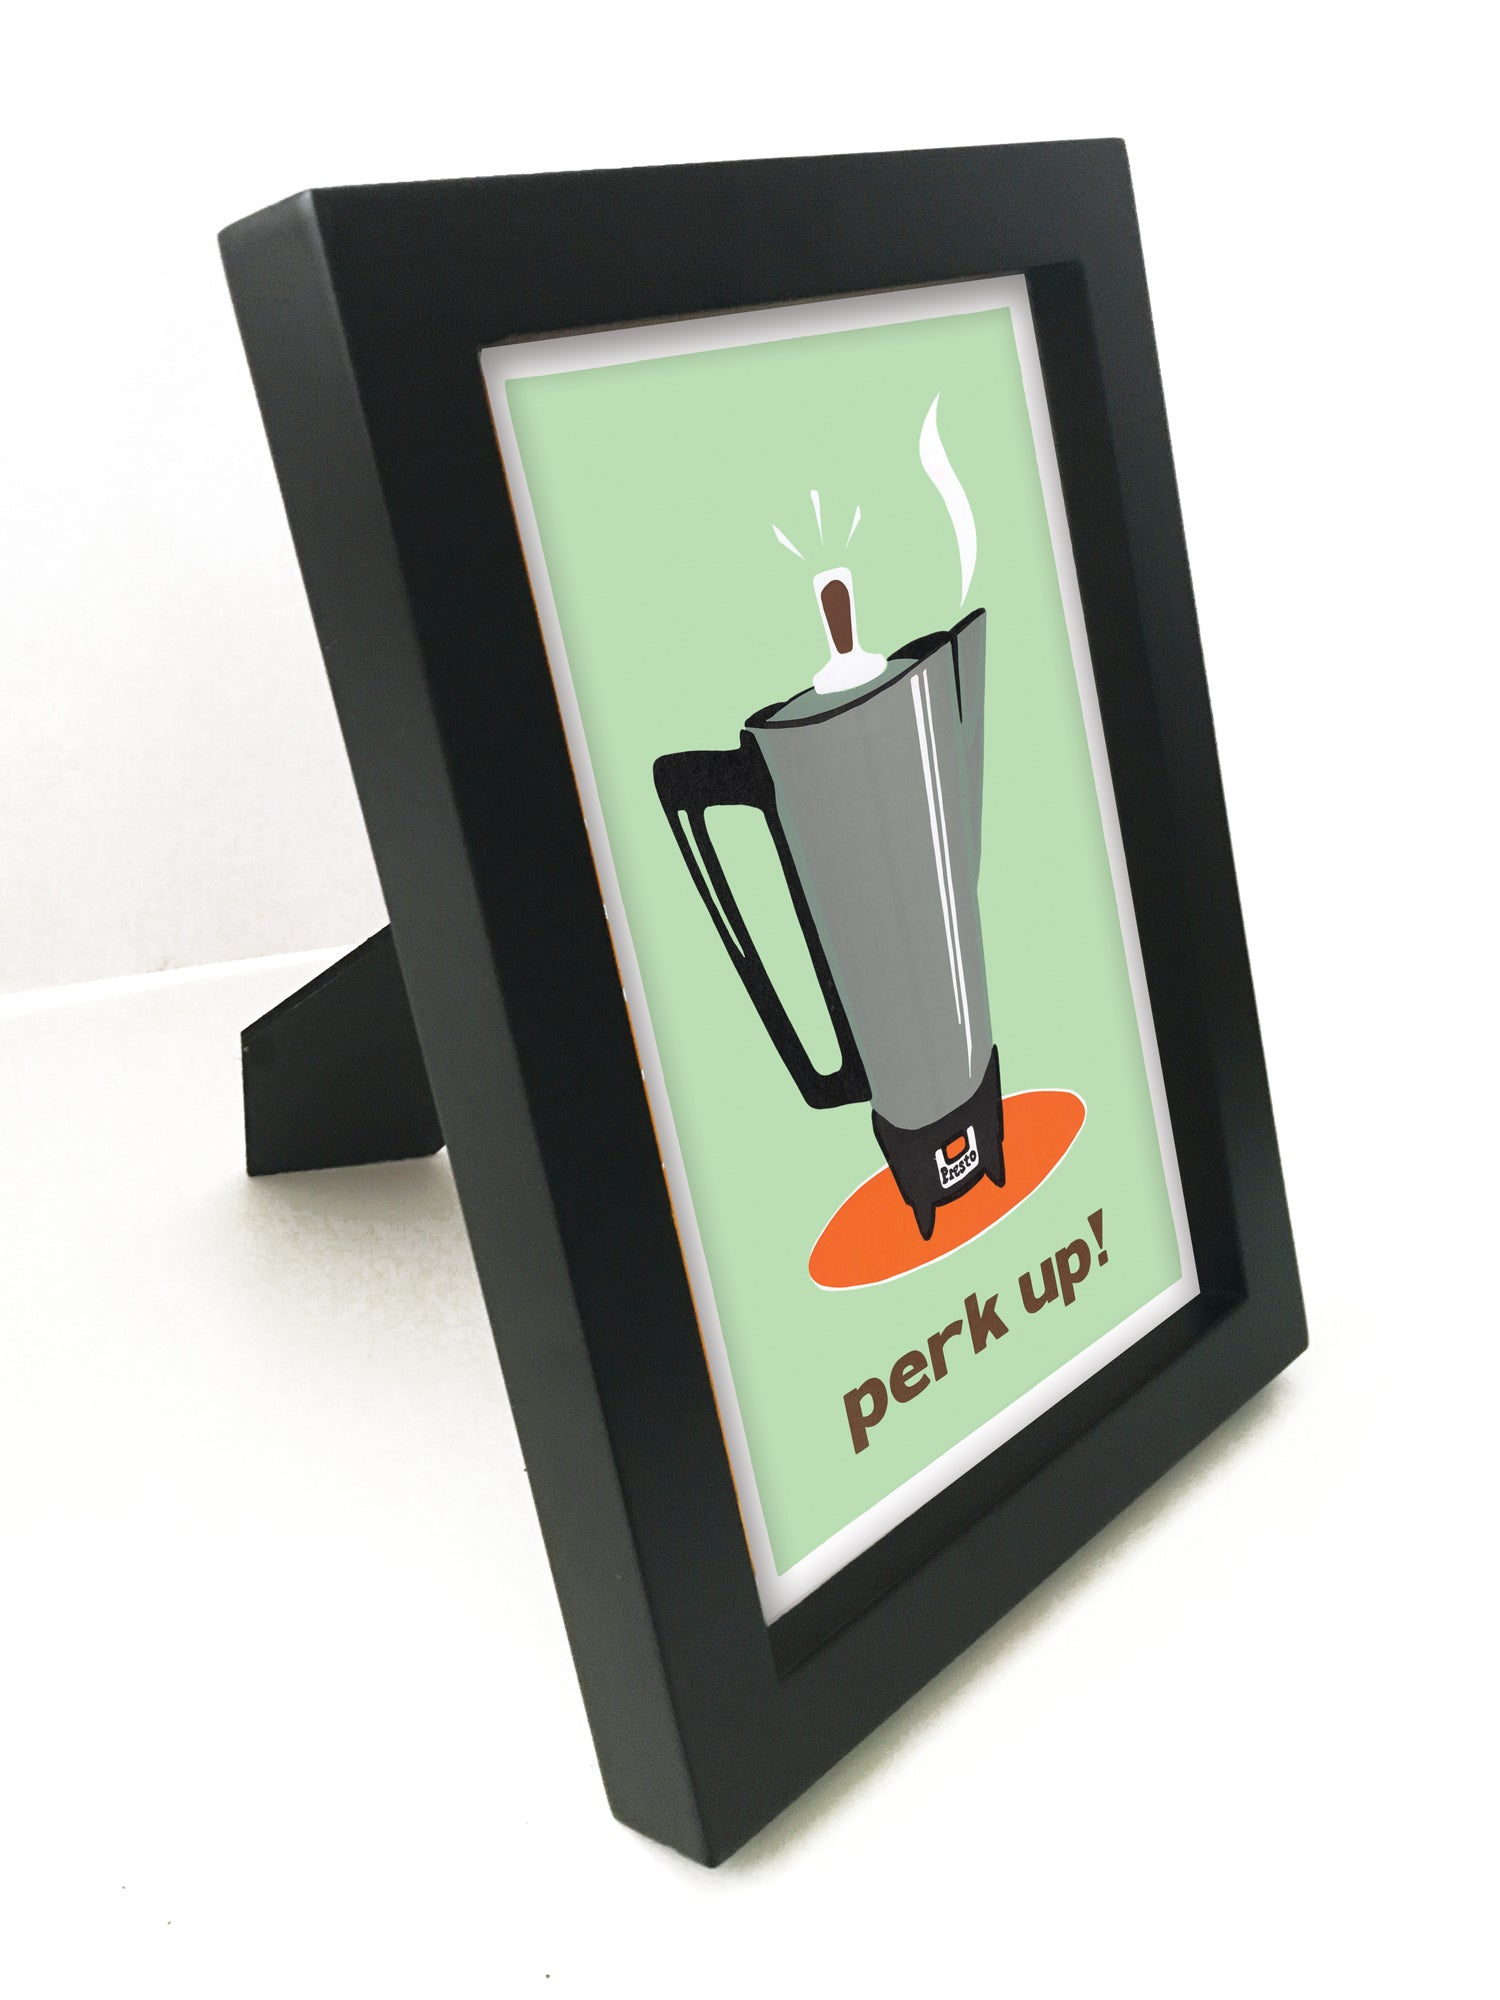 "Perk Up! 5"" x 7"" Framed Reproduction"